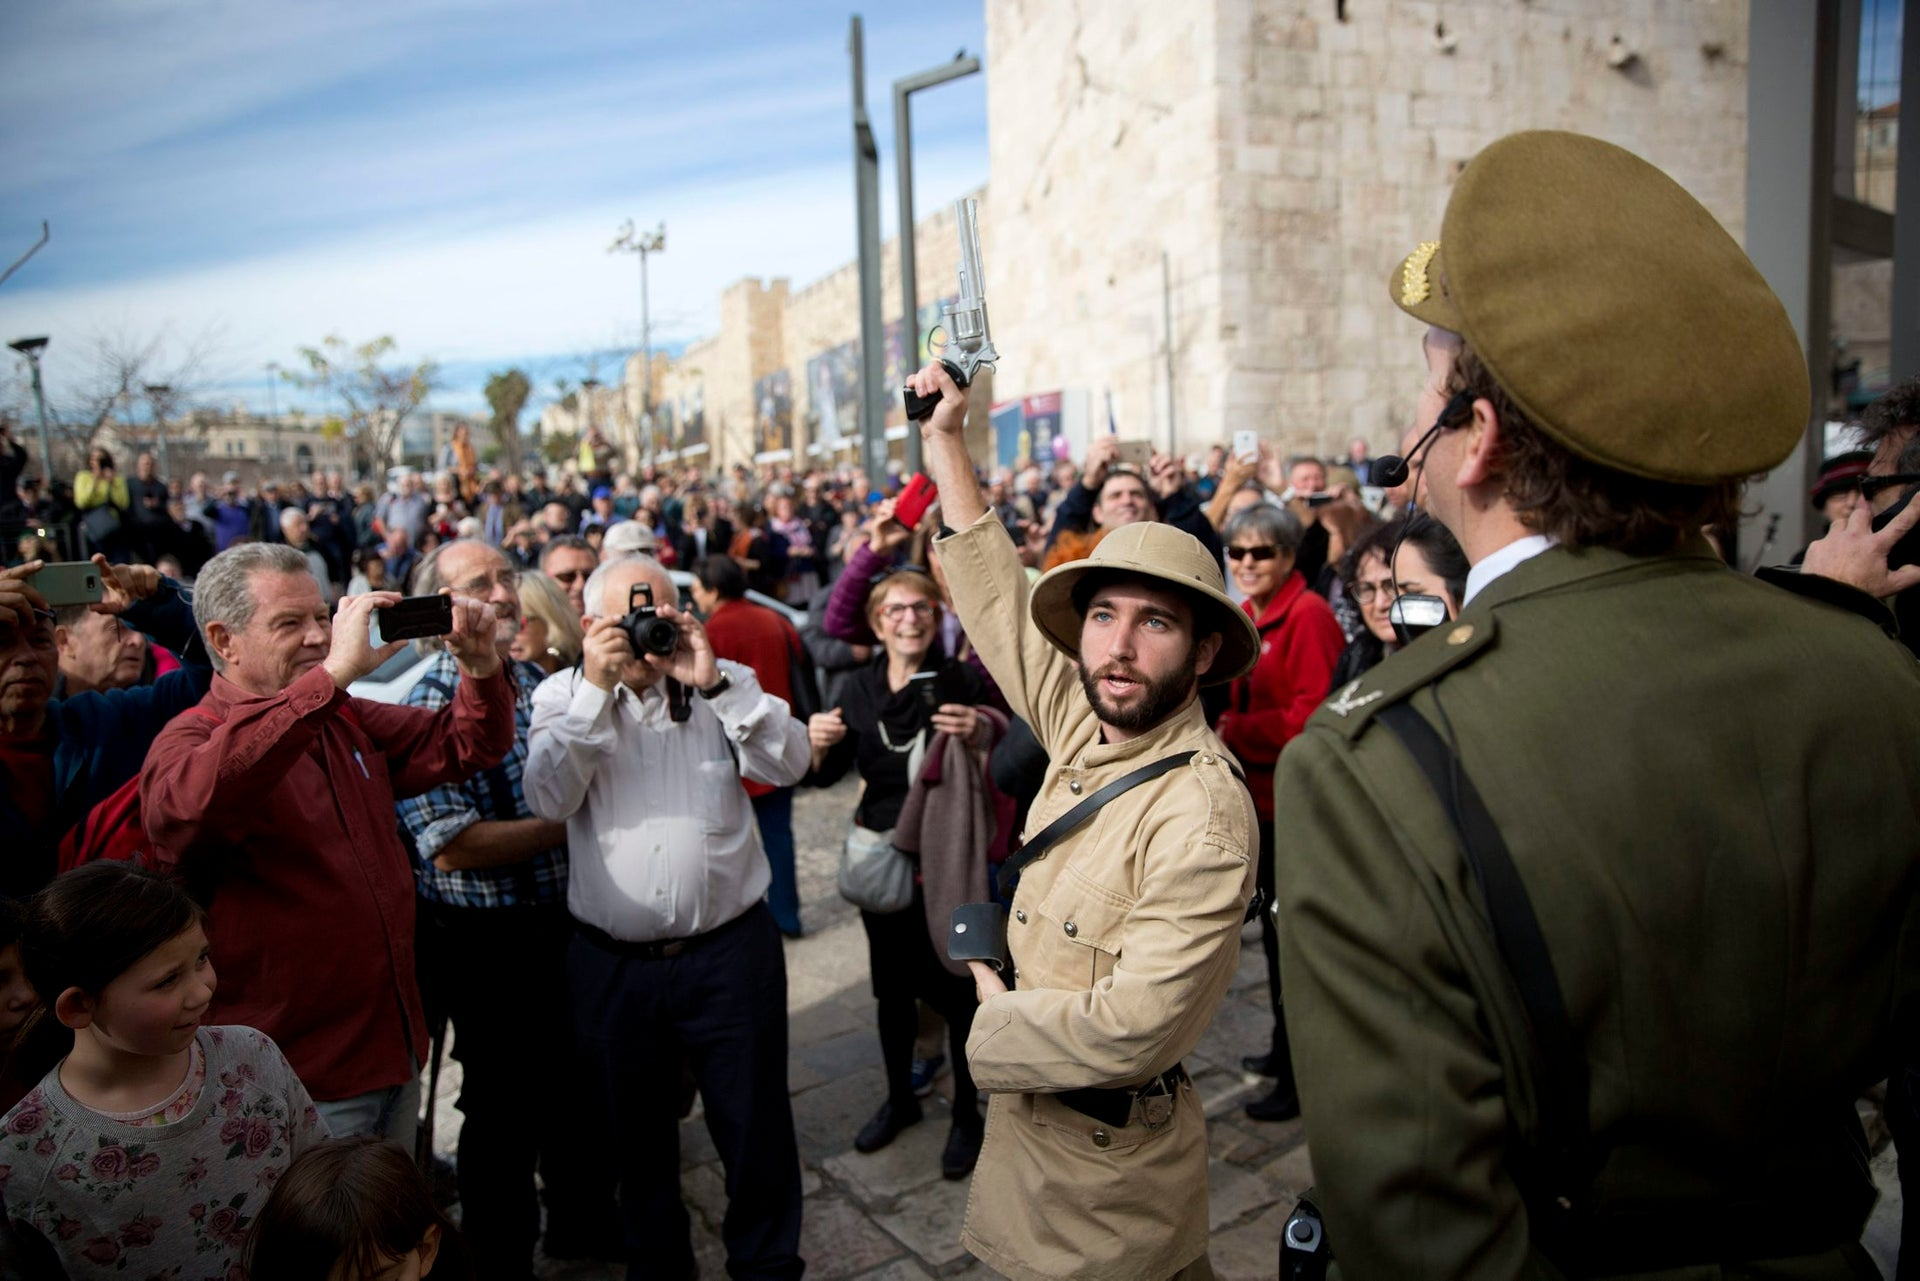 Actors dressed as British soldiers take part the reenactment of the entrance of General Allenby to Jaffa gate in Jerusalem's Old city, December 11, 2017.